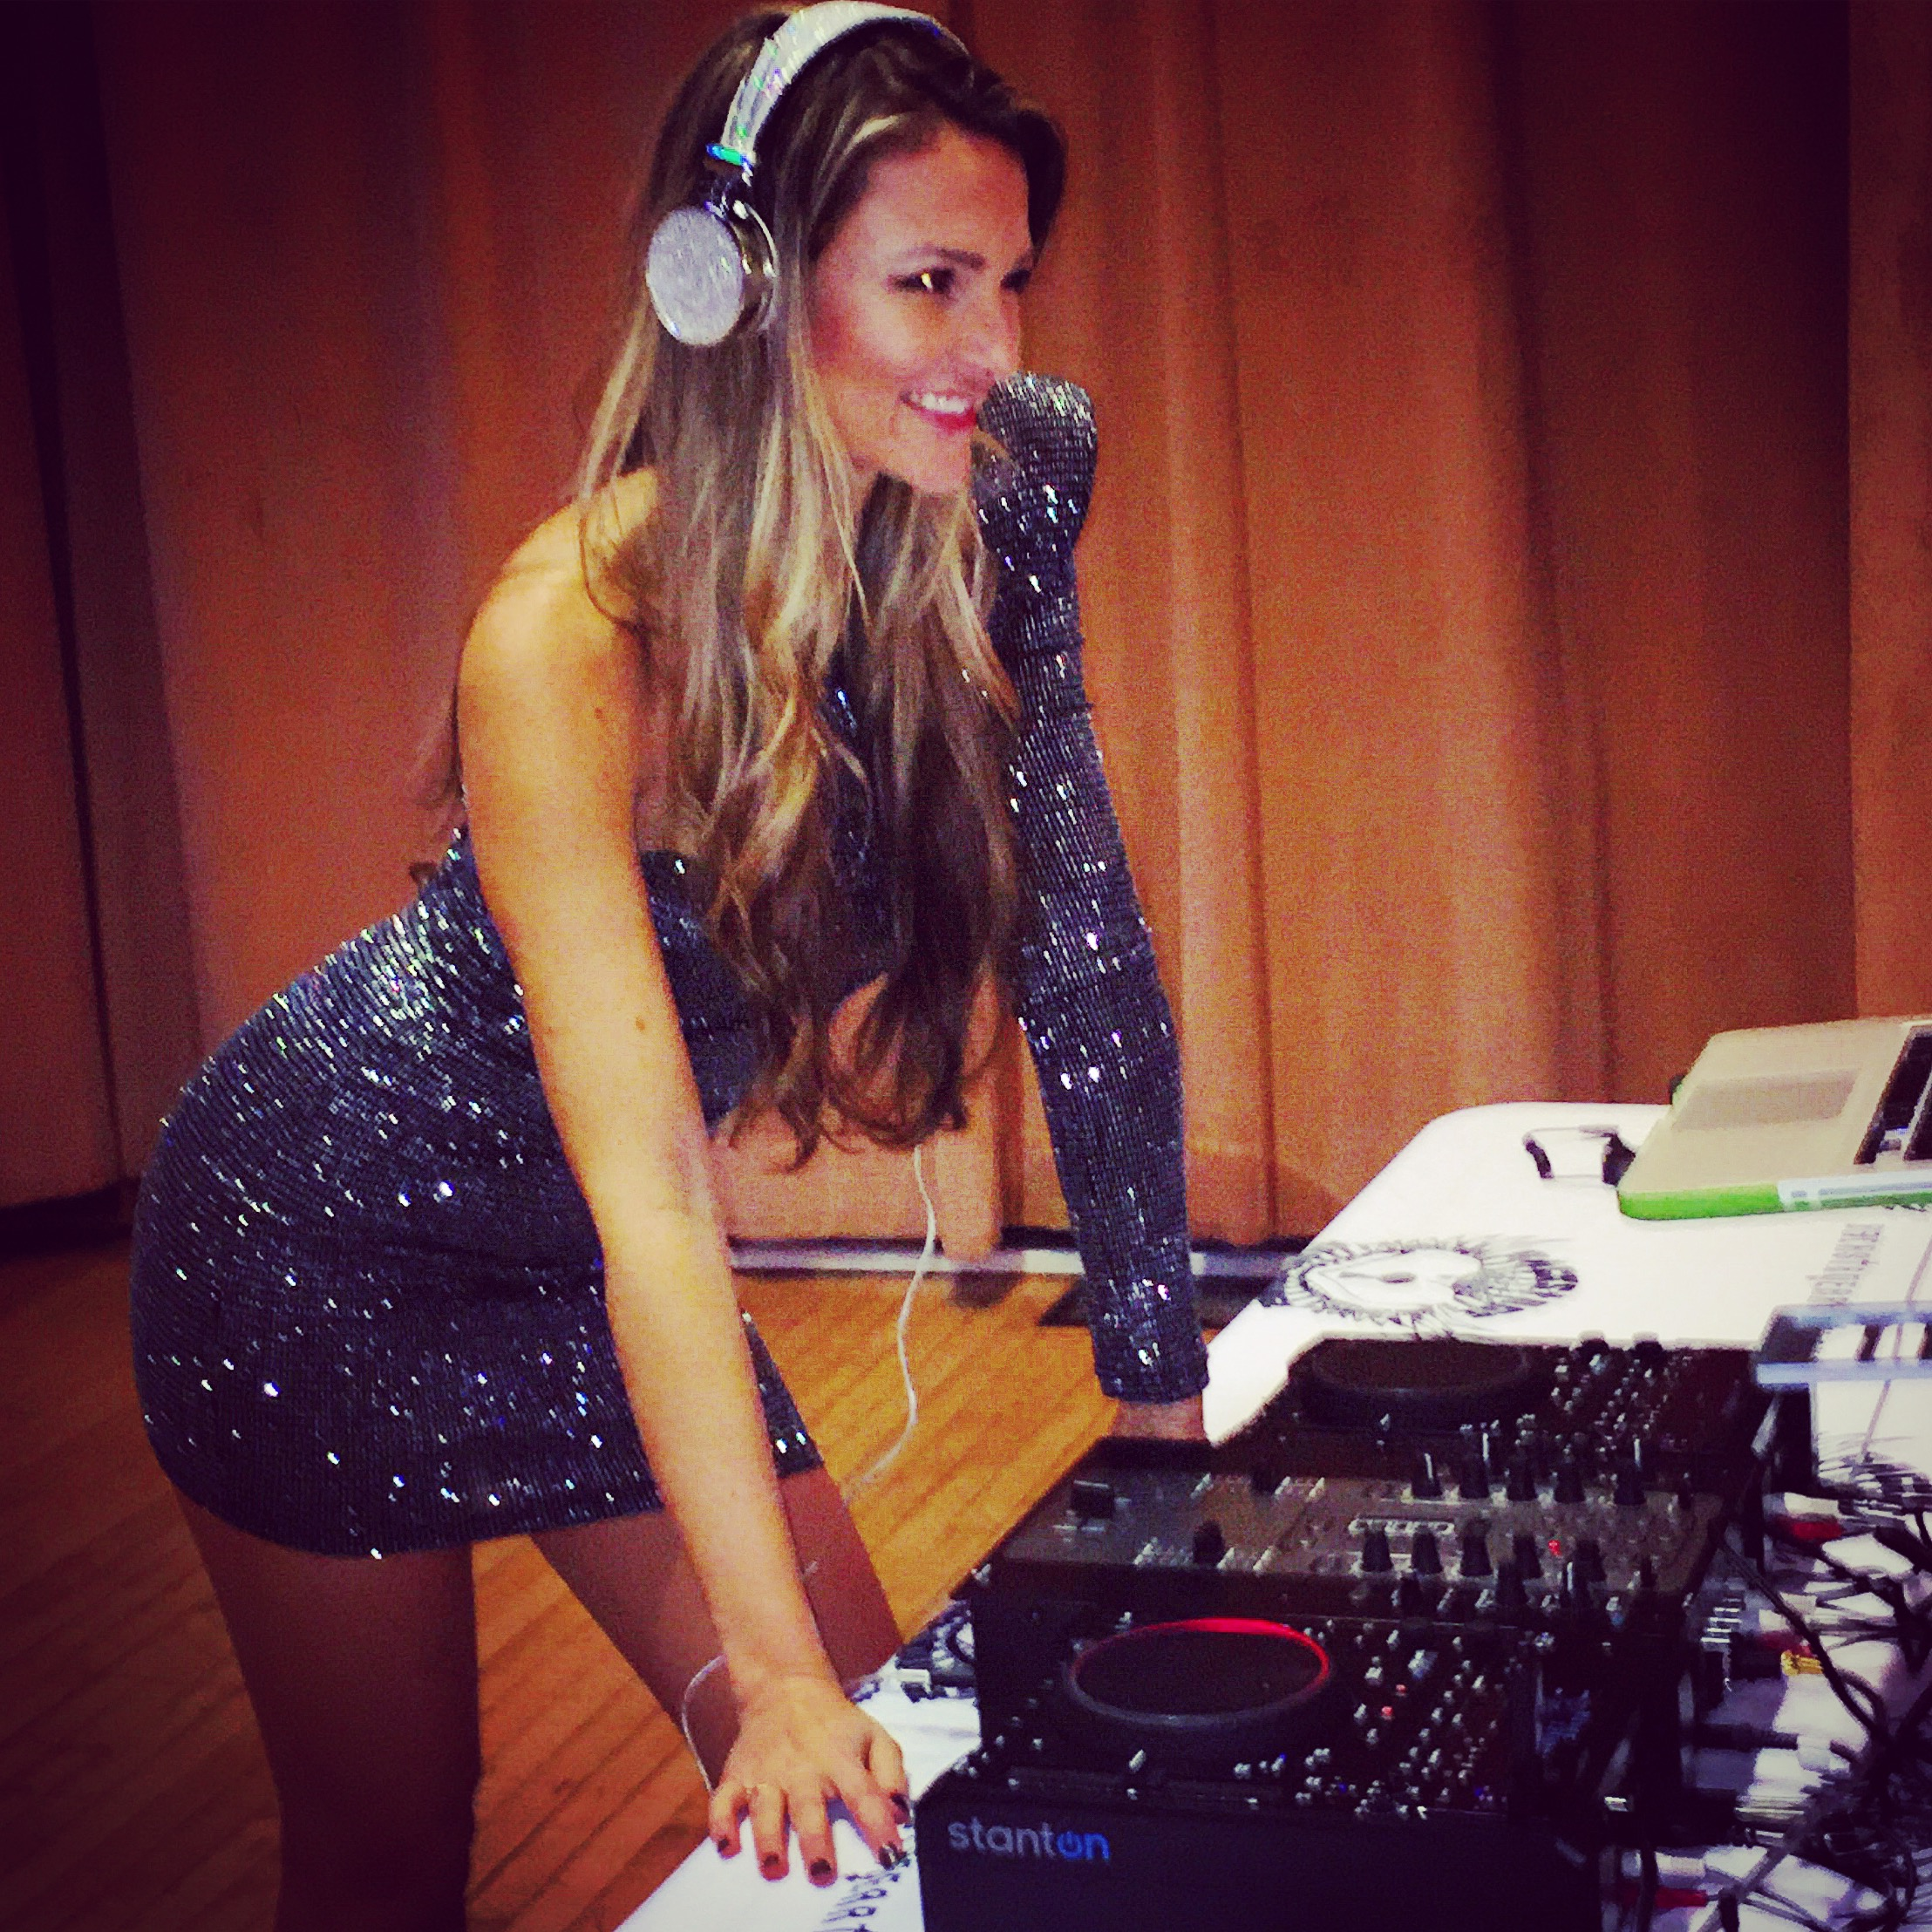 Dj Bad Ash at Sparkling Charity Gala